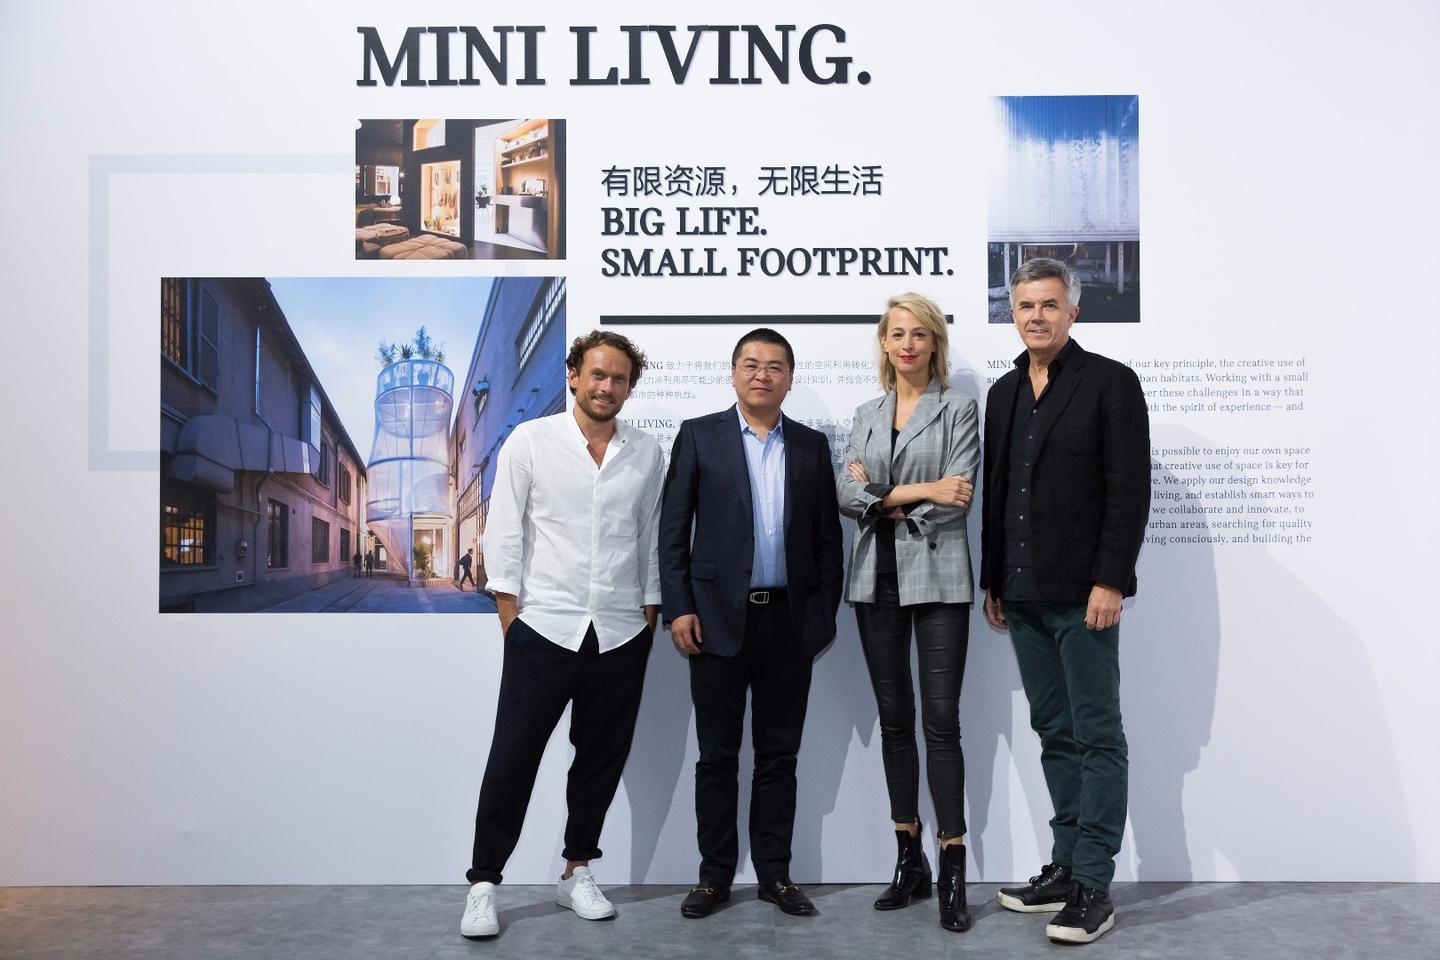 MINI in partnership with Chinese project developer Nova Property Investment Co. are set to convert an abandoned paint factory in the Jing'An district of Shanghai into a smart living initiative